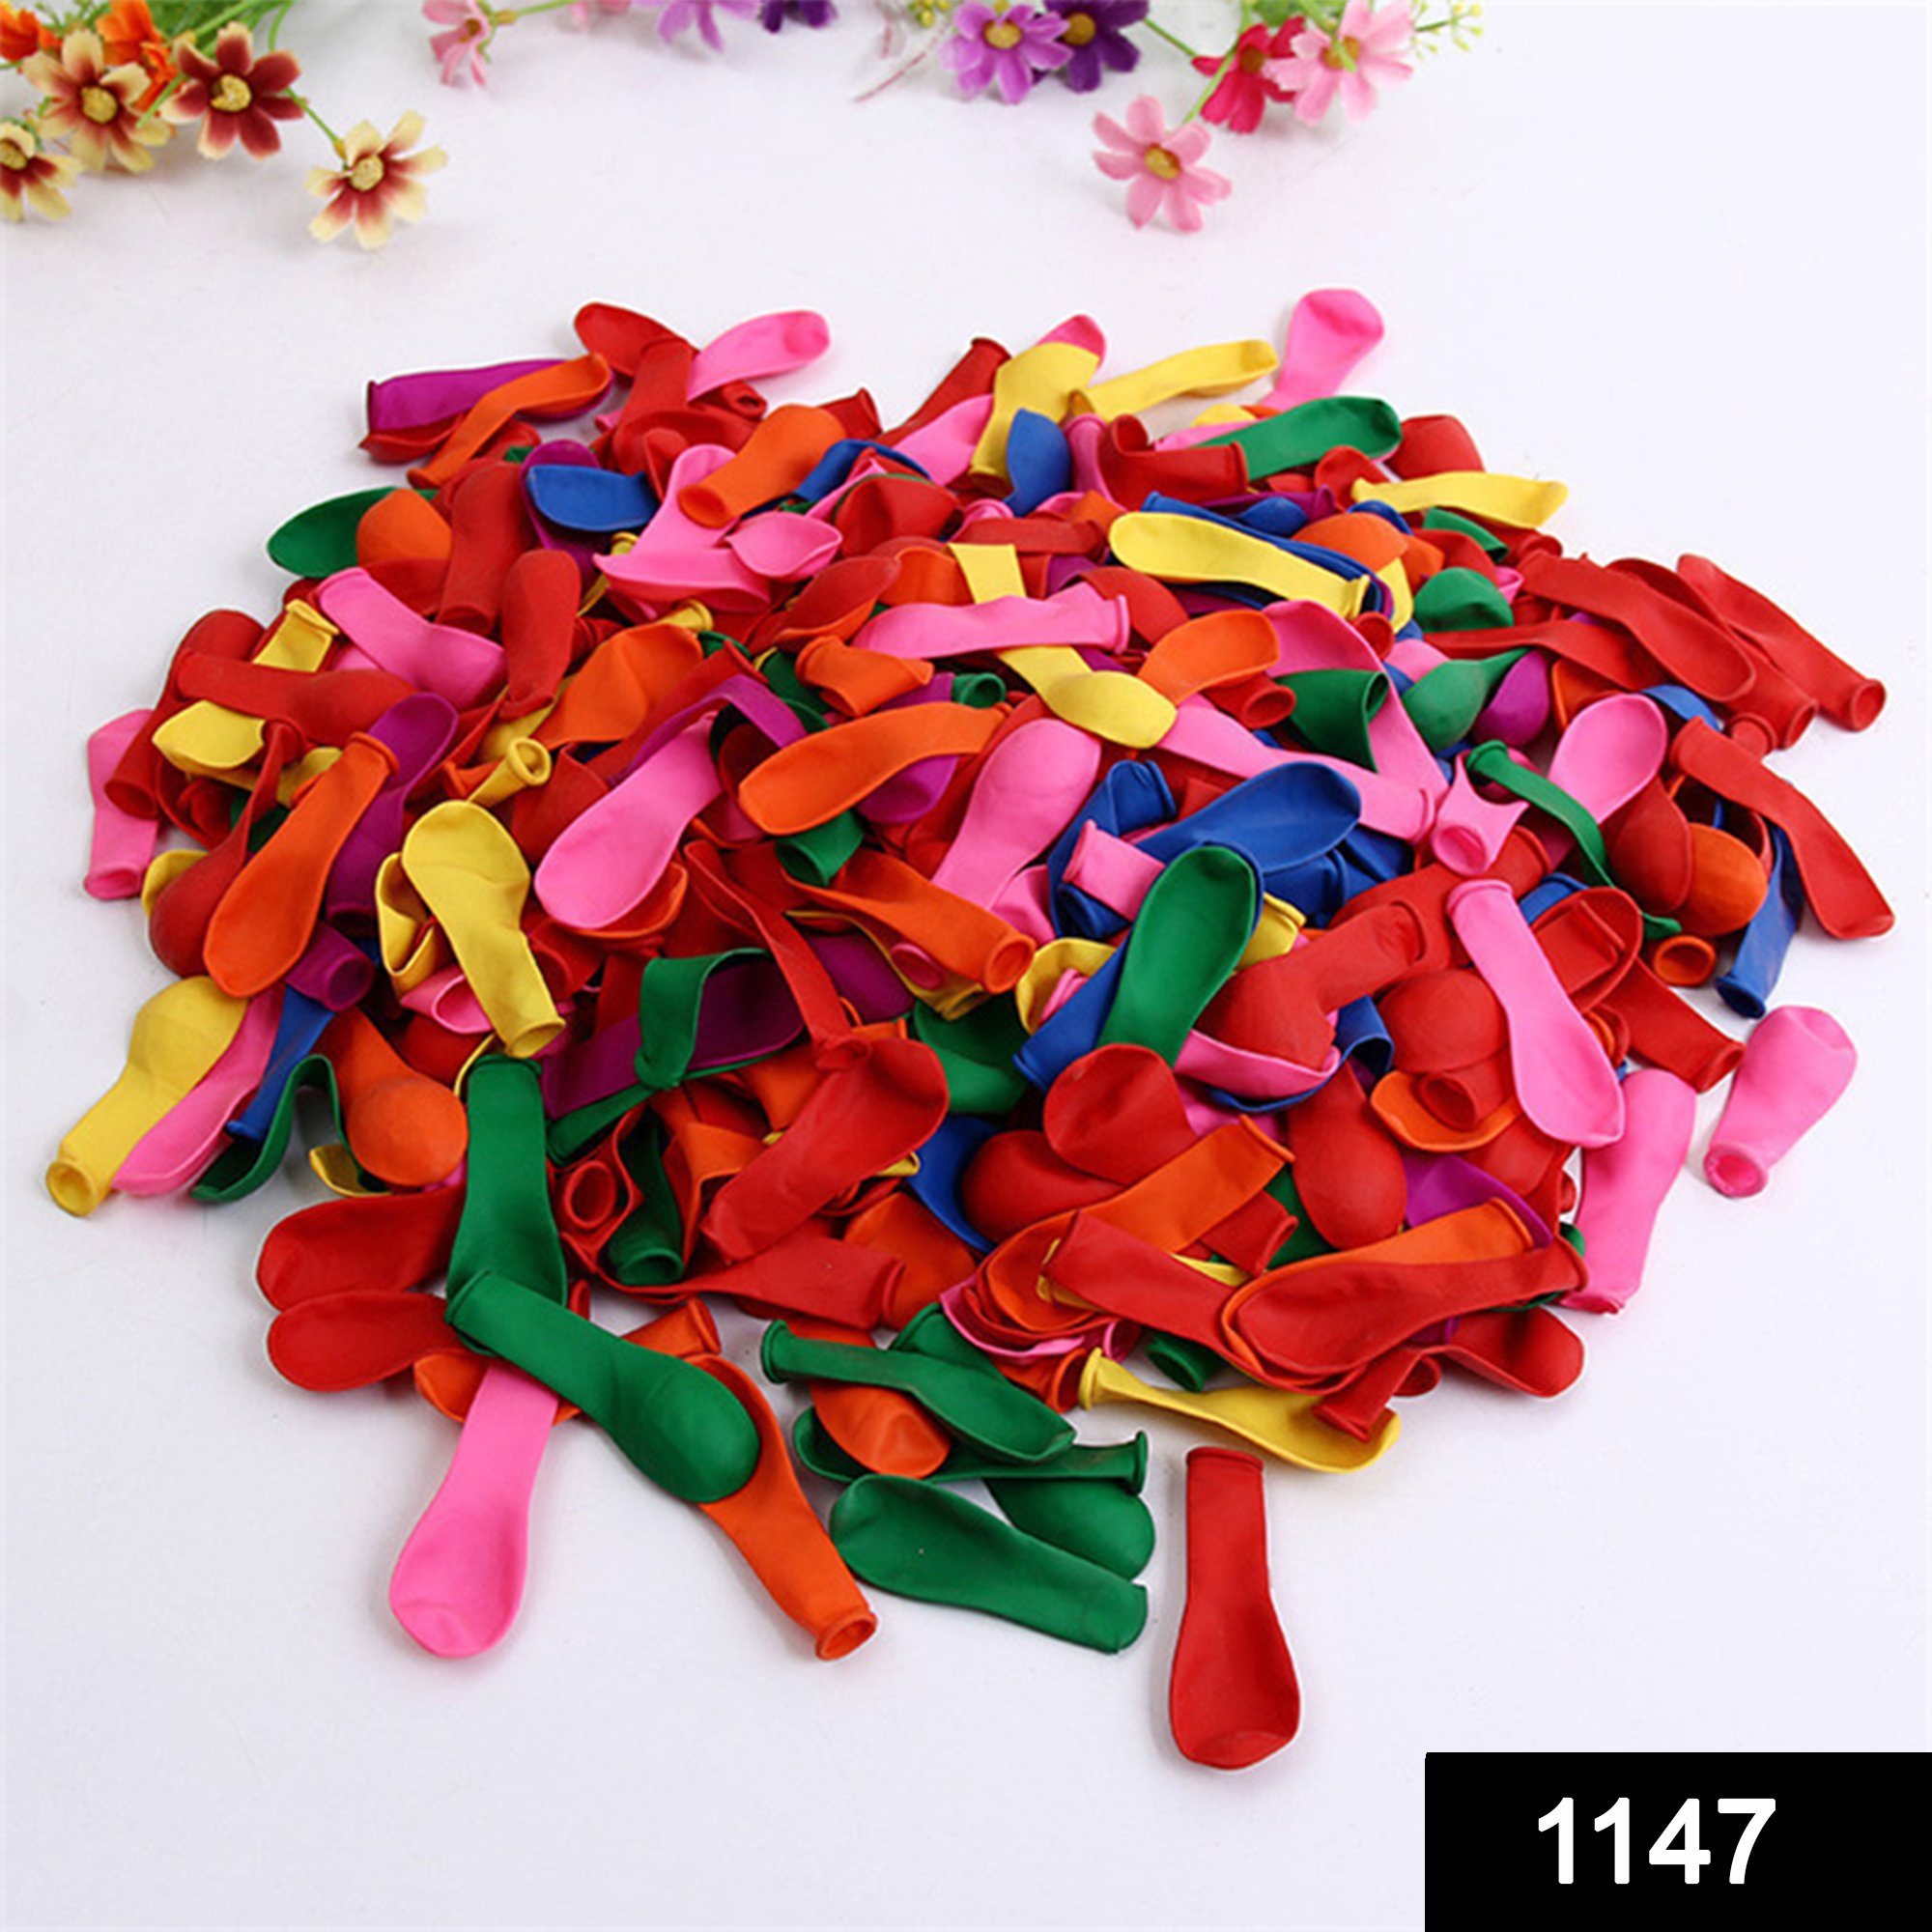 1147 Non Toxic Holi Water Balloons (Pack of 500 Balloons) (Multicolour) -